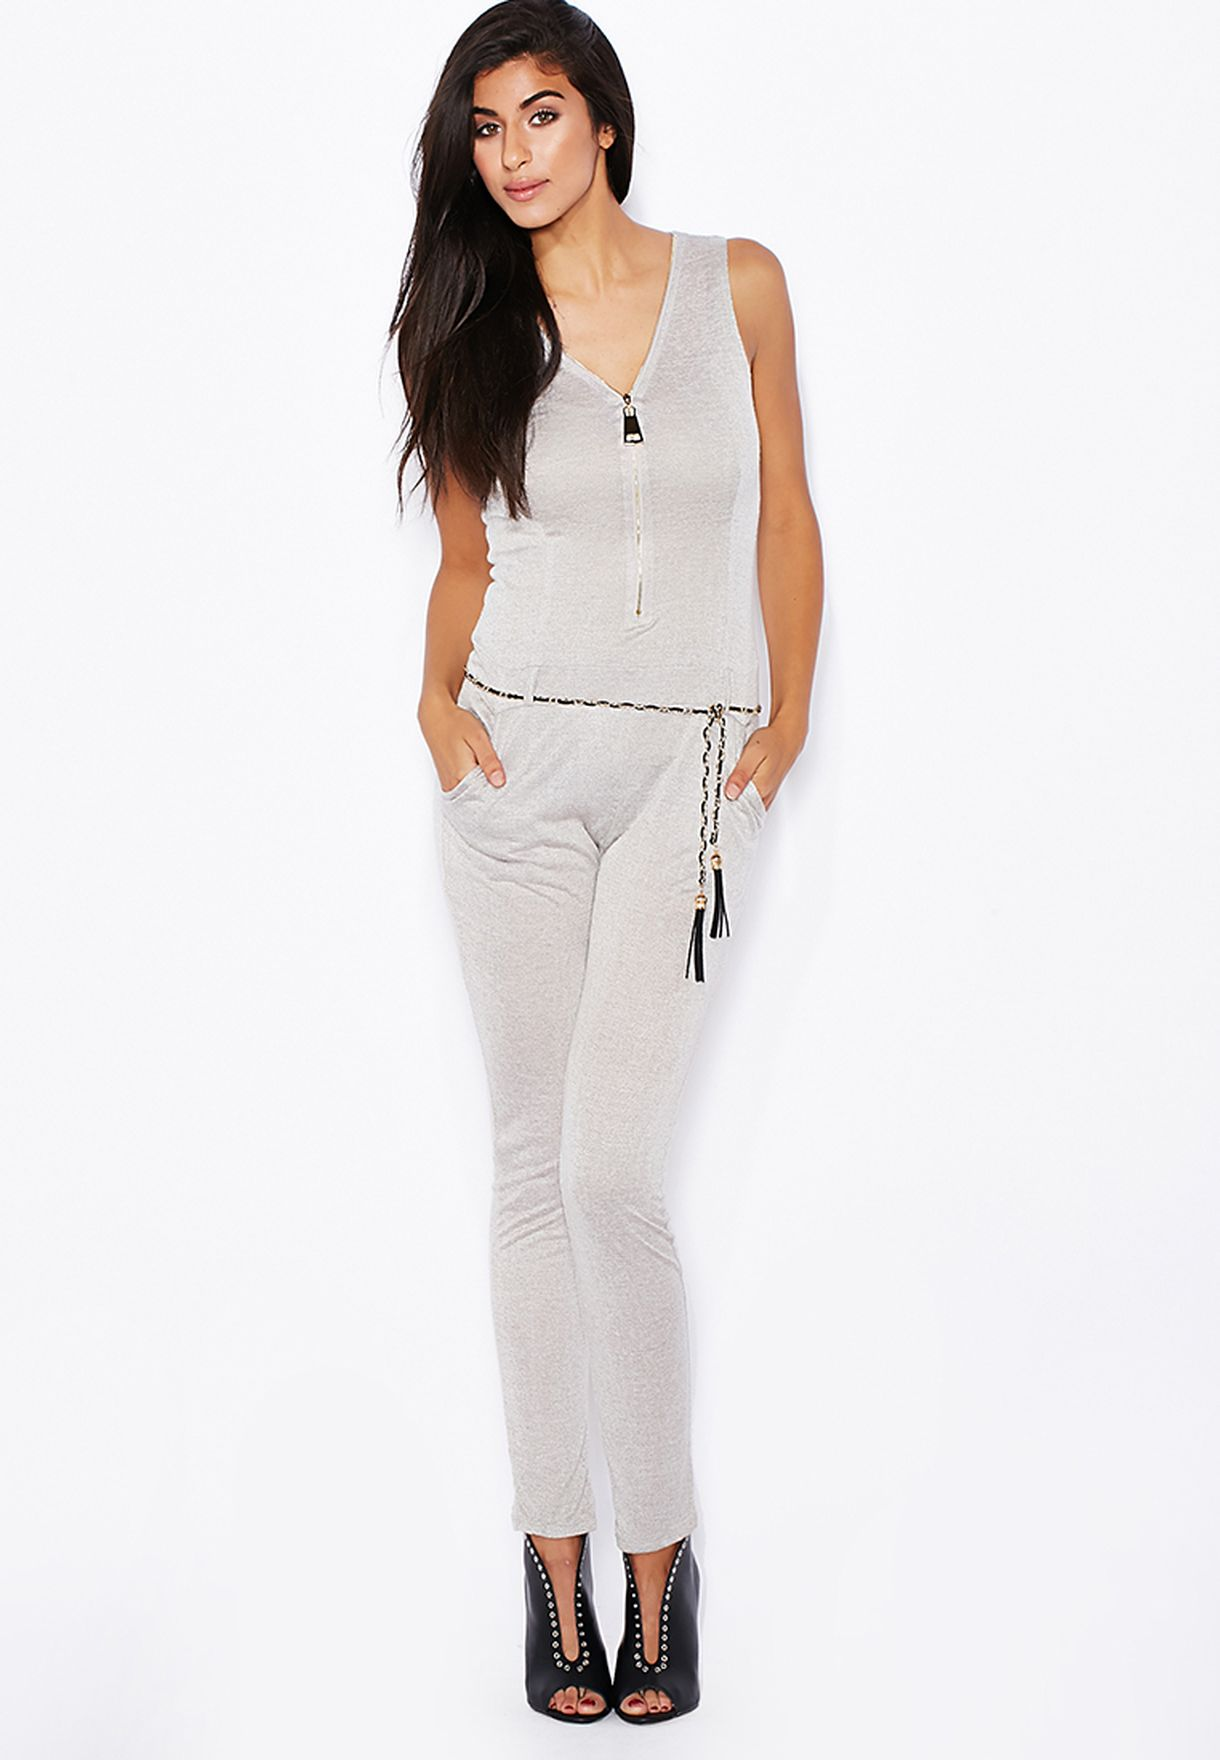 565b6126e72 Shop Ginger grey Zip Front Belted Jumpsuit for Women in Qatar - GI121AT25RQK